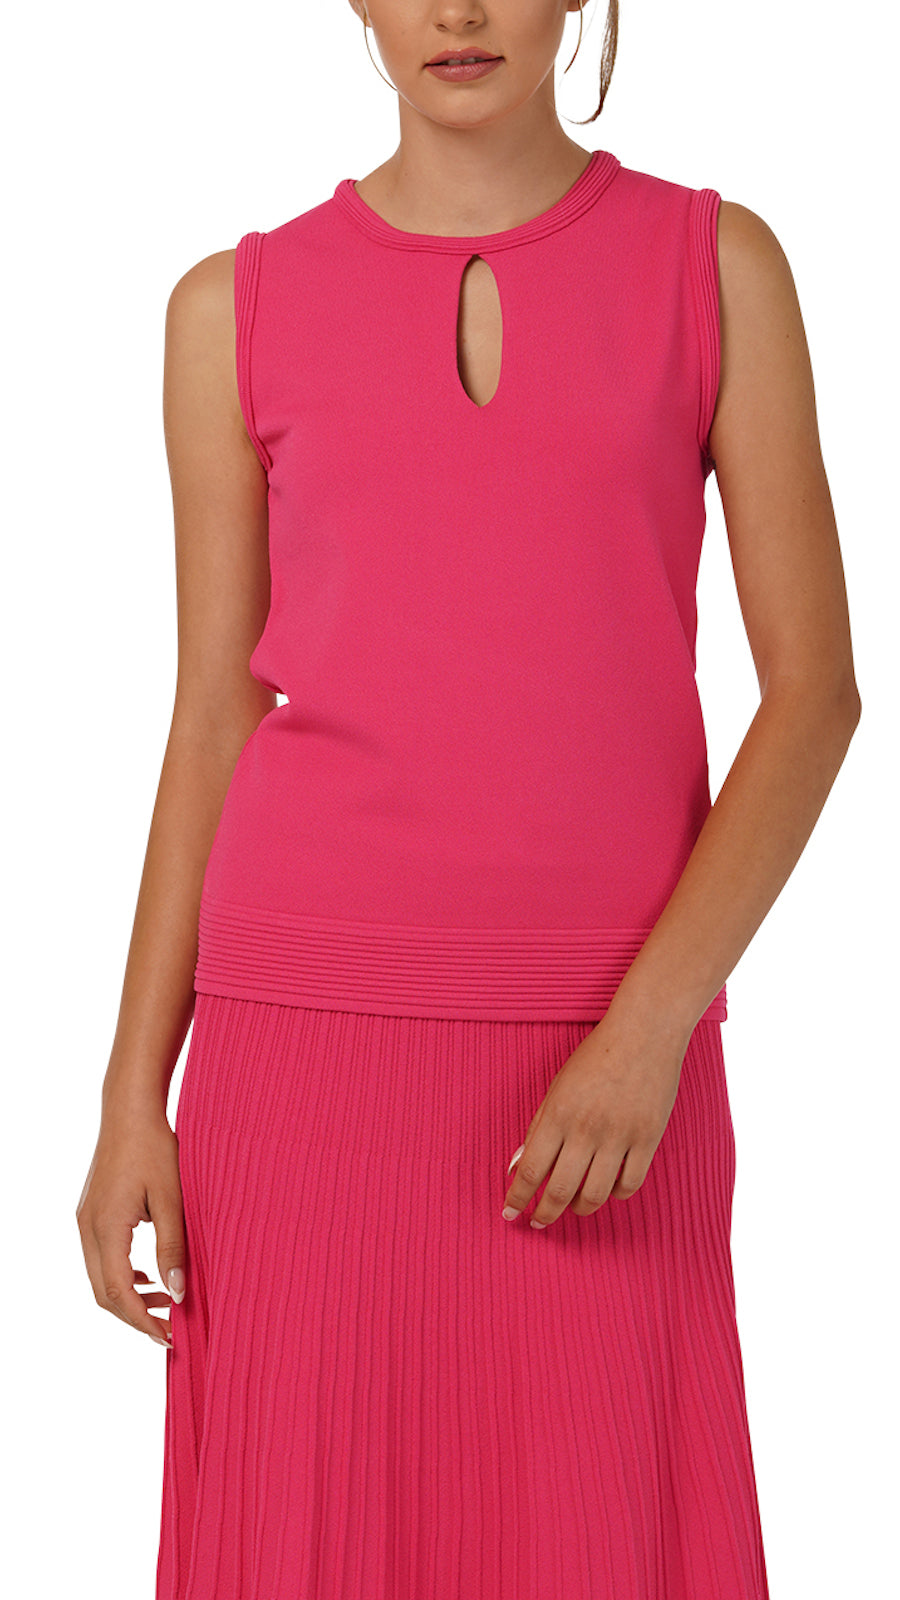 Stella Sleeveless Knitted Top, Pink